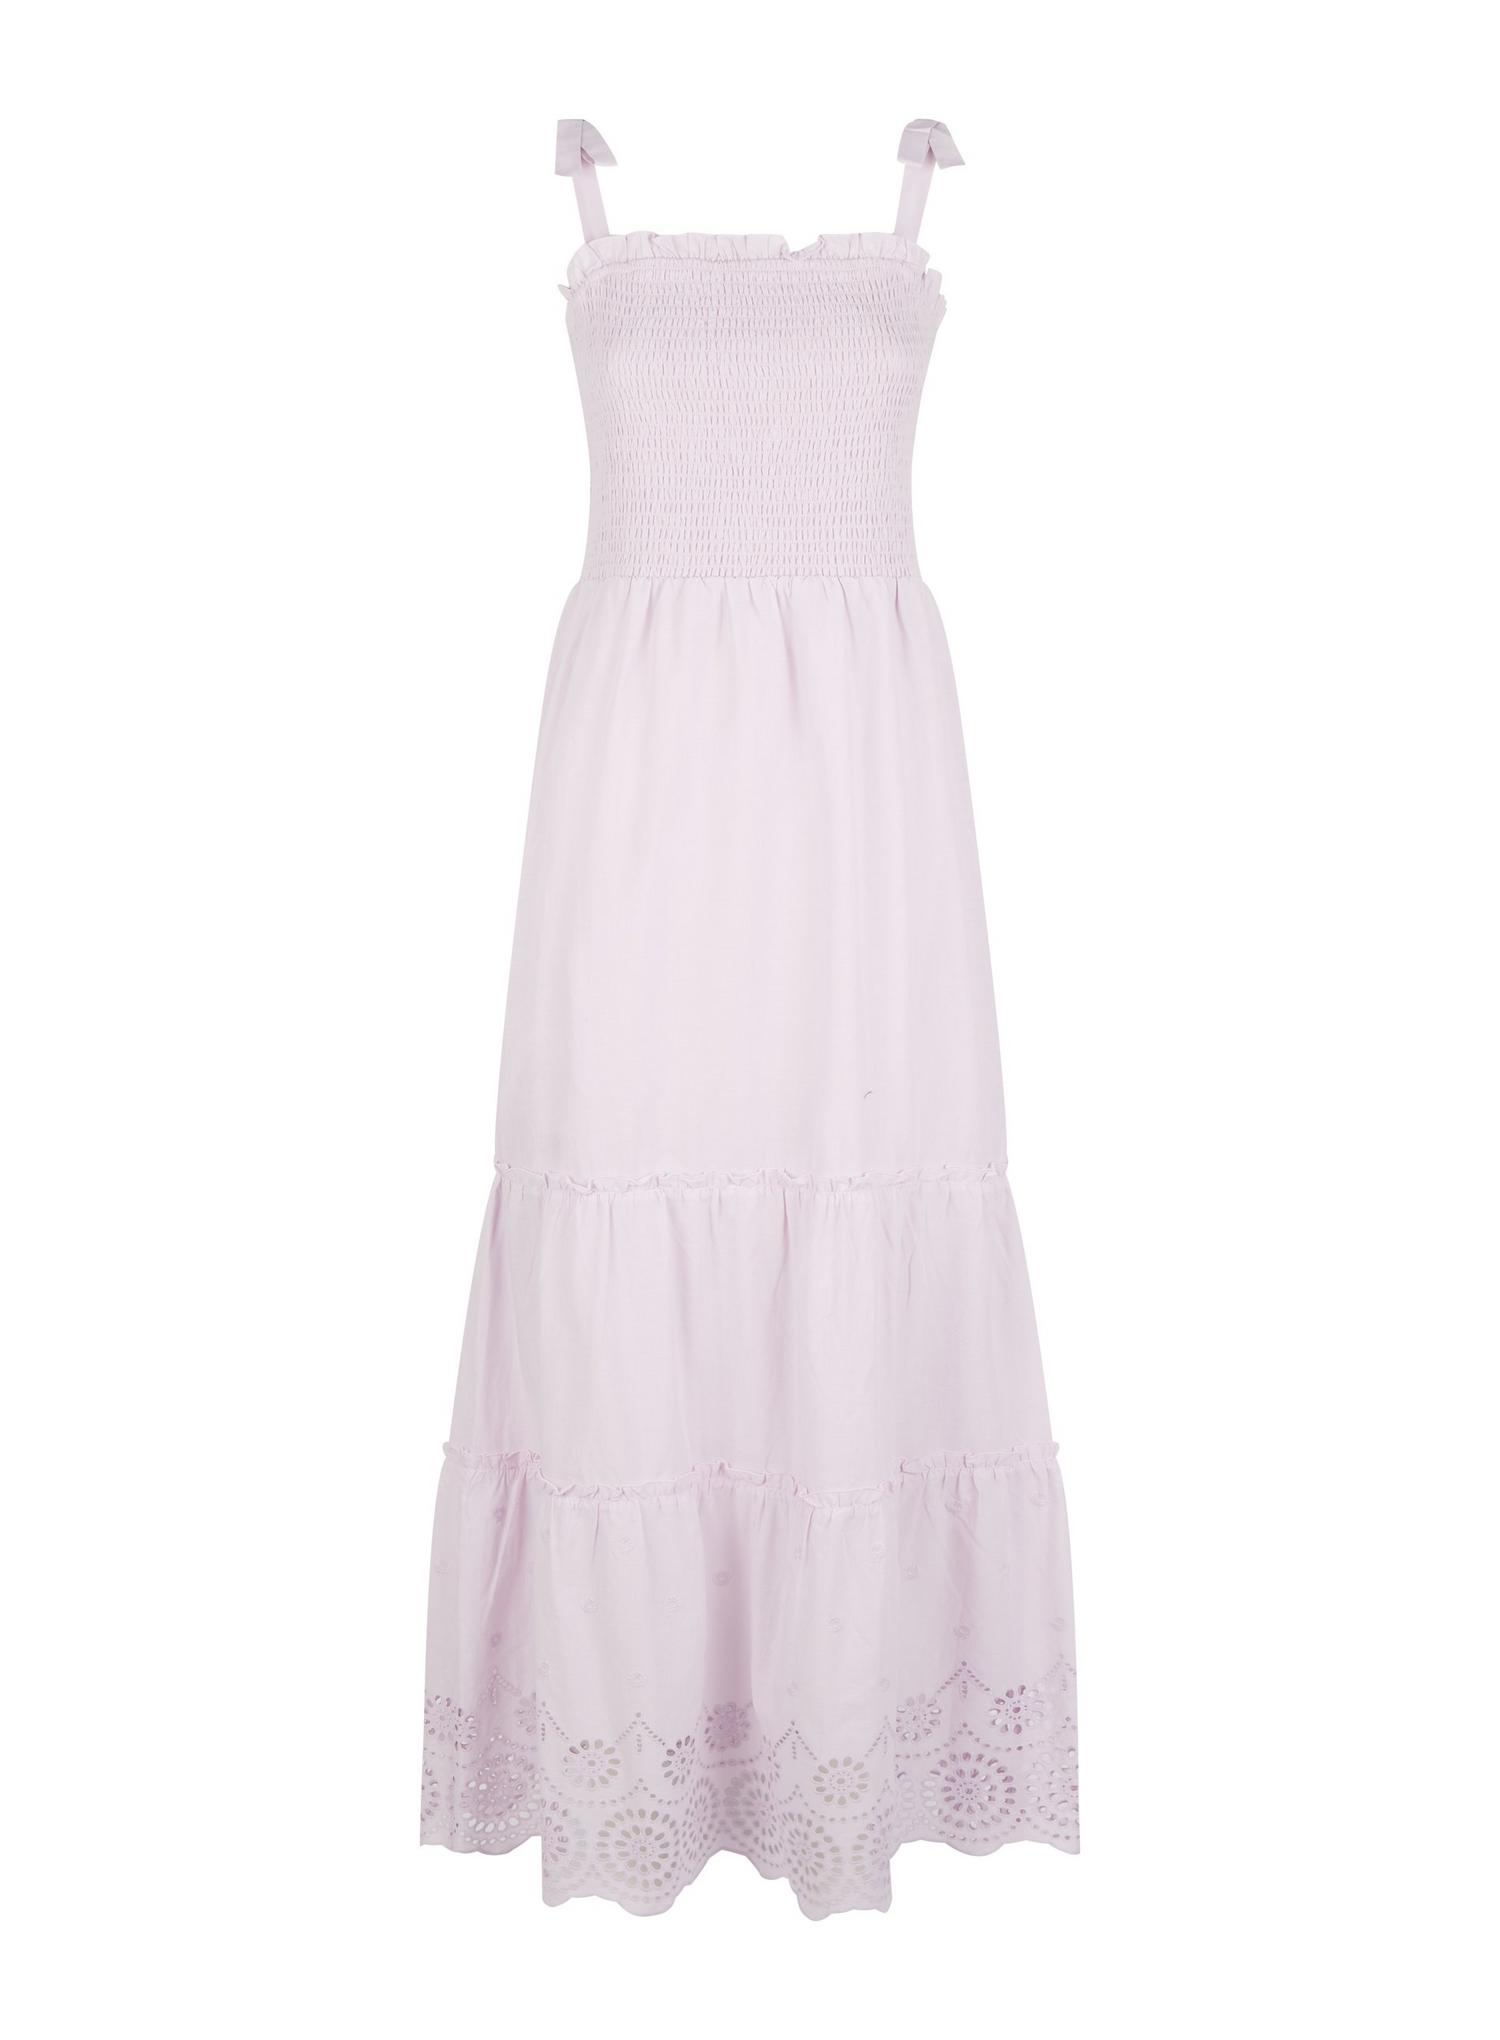 156 Lilac Broderie Camisole Dress image number 2